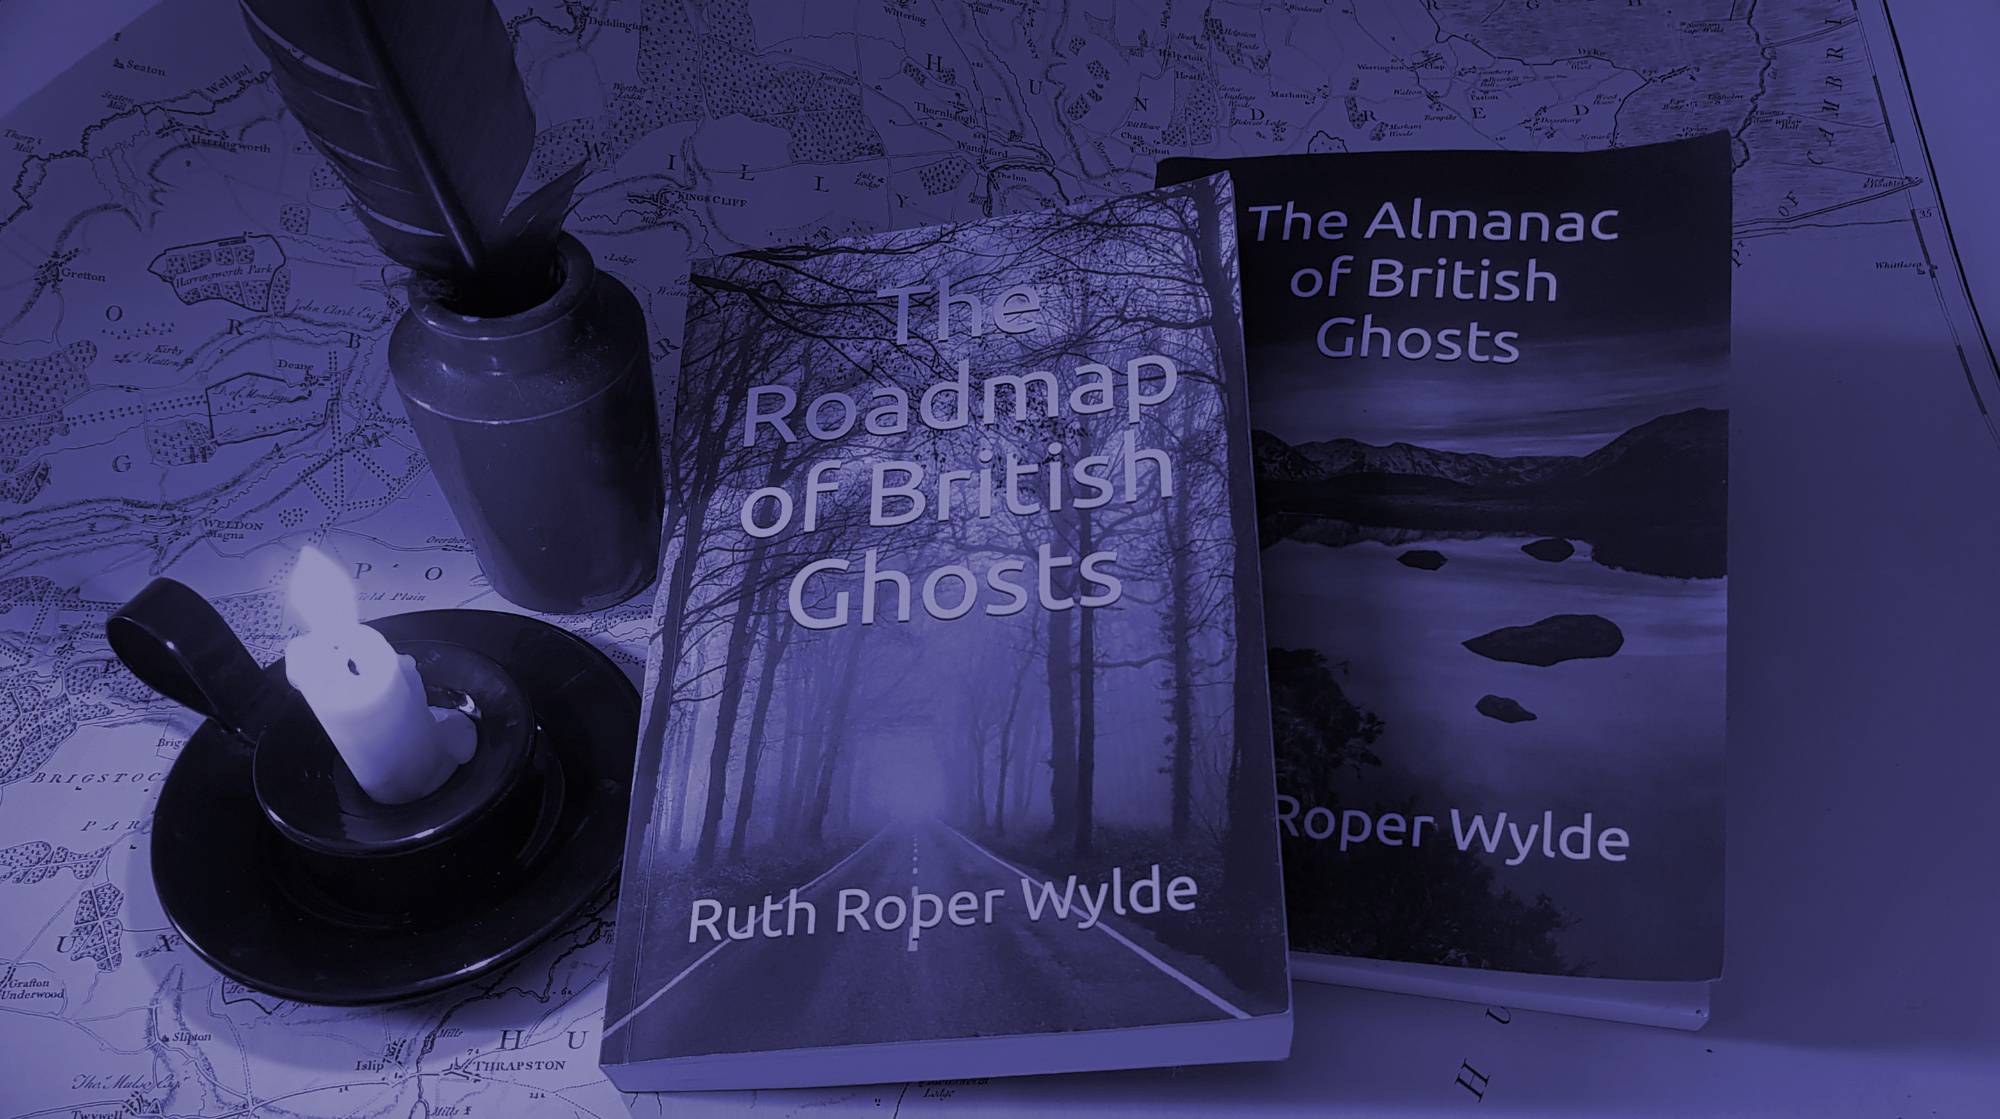 Episode 36 – In Conversation With Ruth Roper Wylde